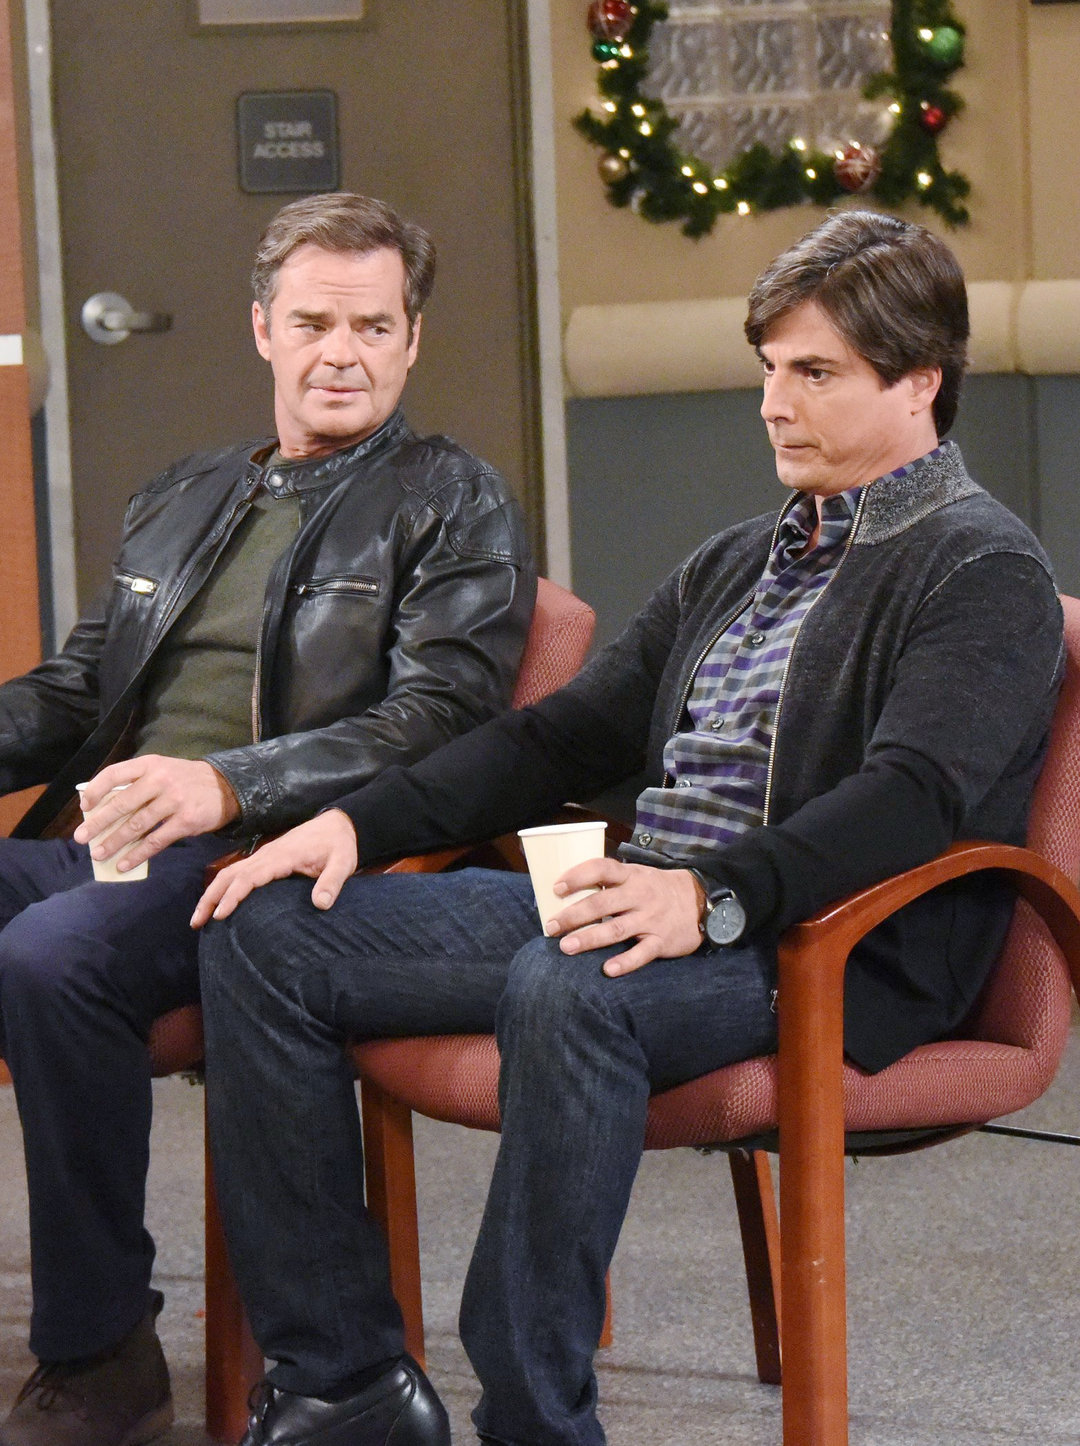 Days of Our Lives Spoilers: Thursday Dec. 29 - Jennifer Urges Chad to Have Compassion – Lucas and Justin Clash